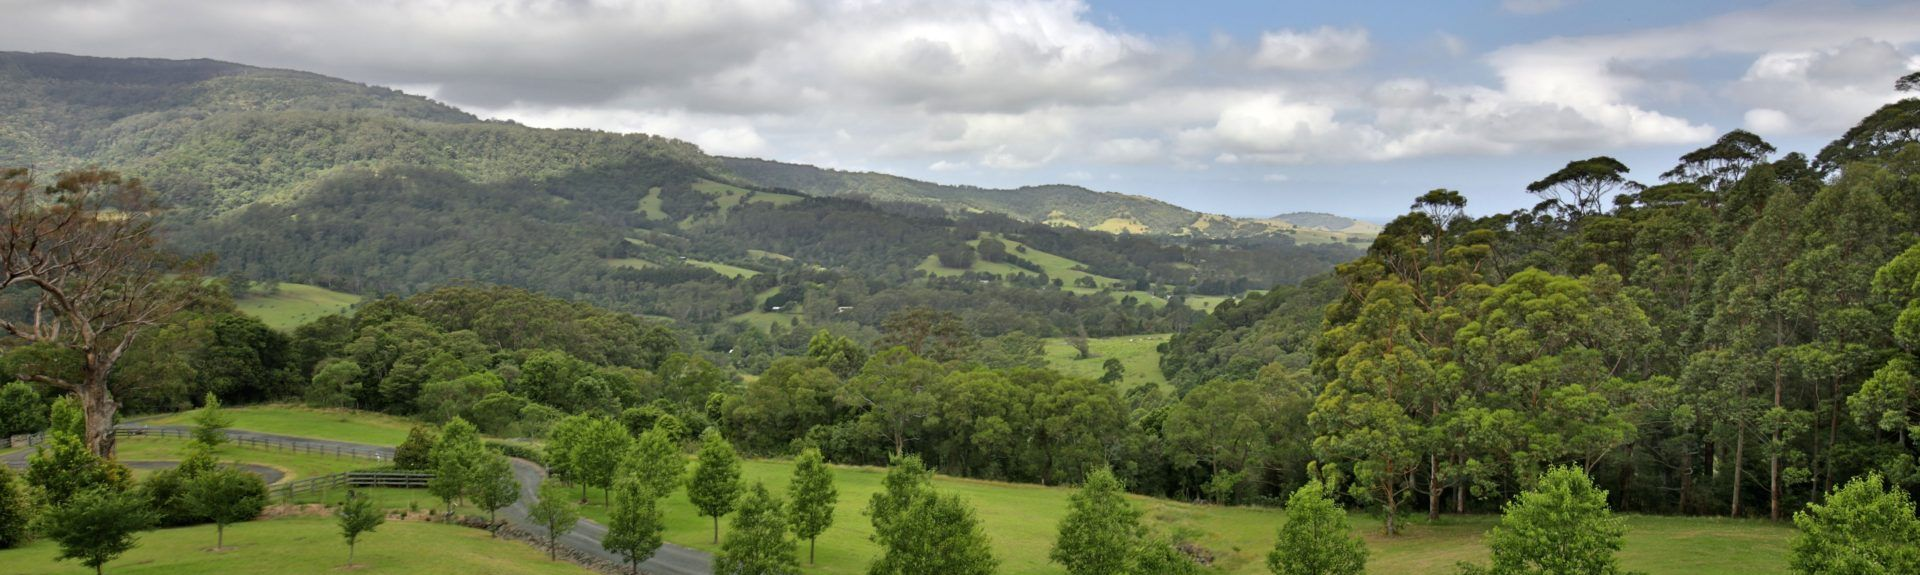 Southern Highlands, NSW, Australia